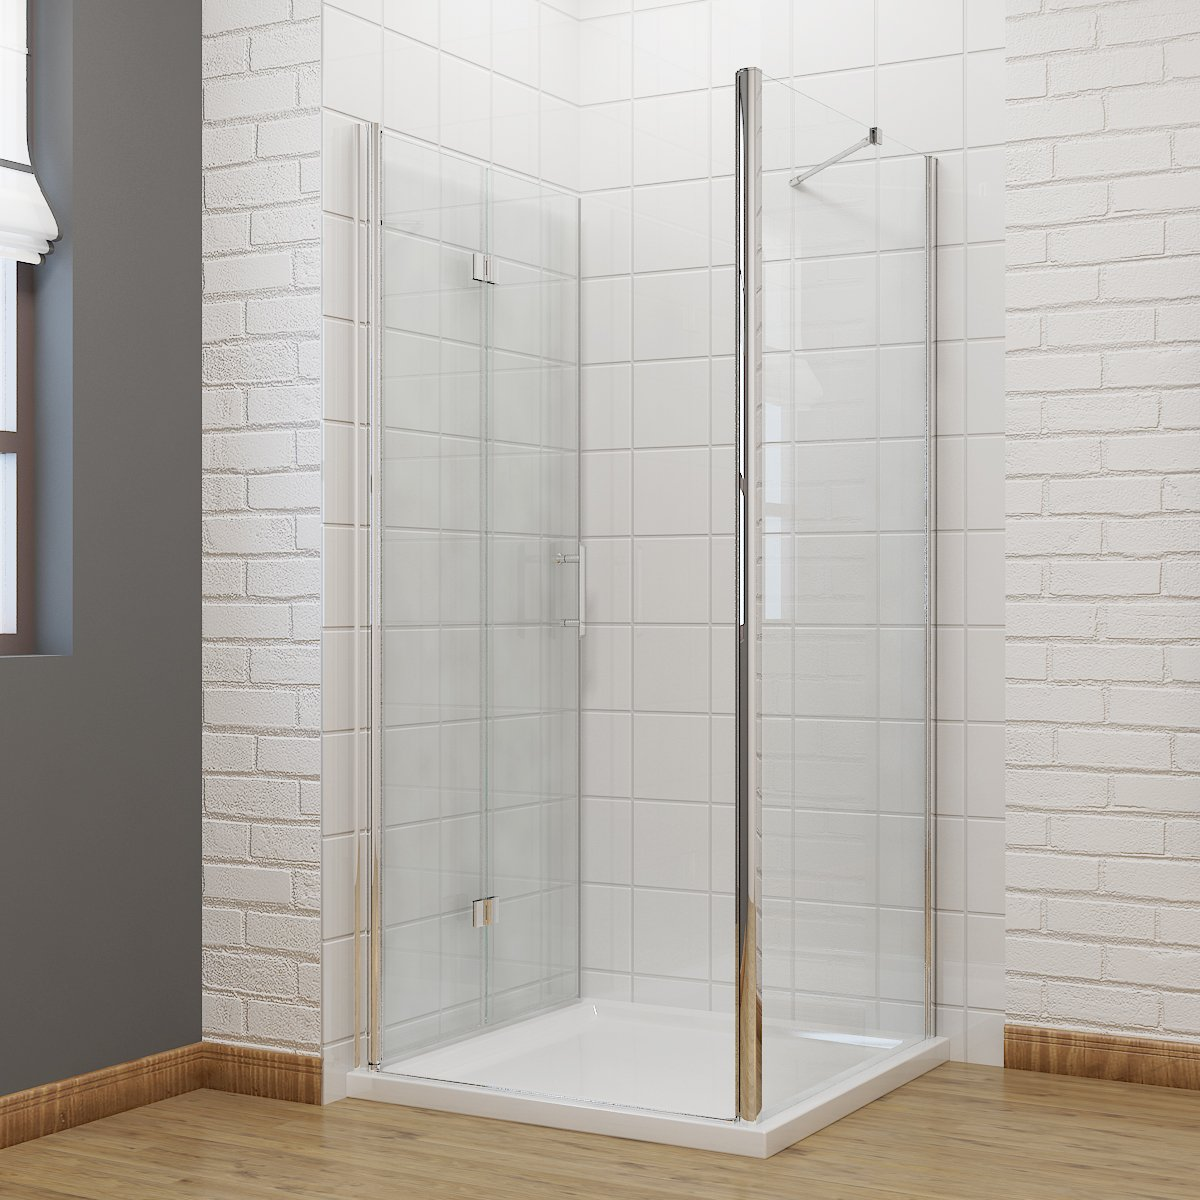 sunny showers 800 x 700 mm Bifold Shower Enclosure Glass Shower Door ...